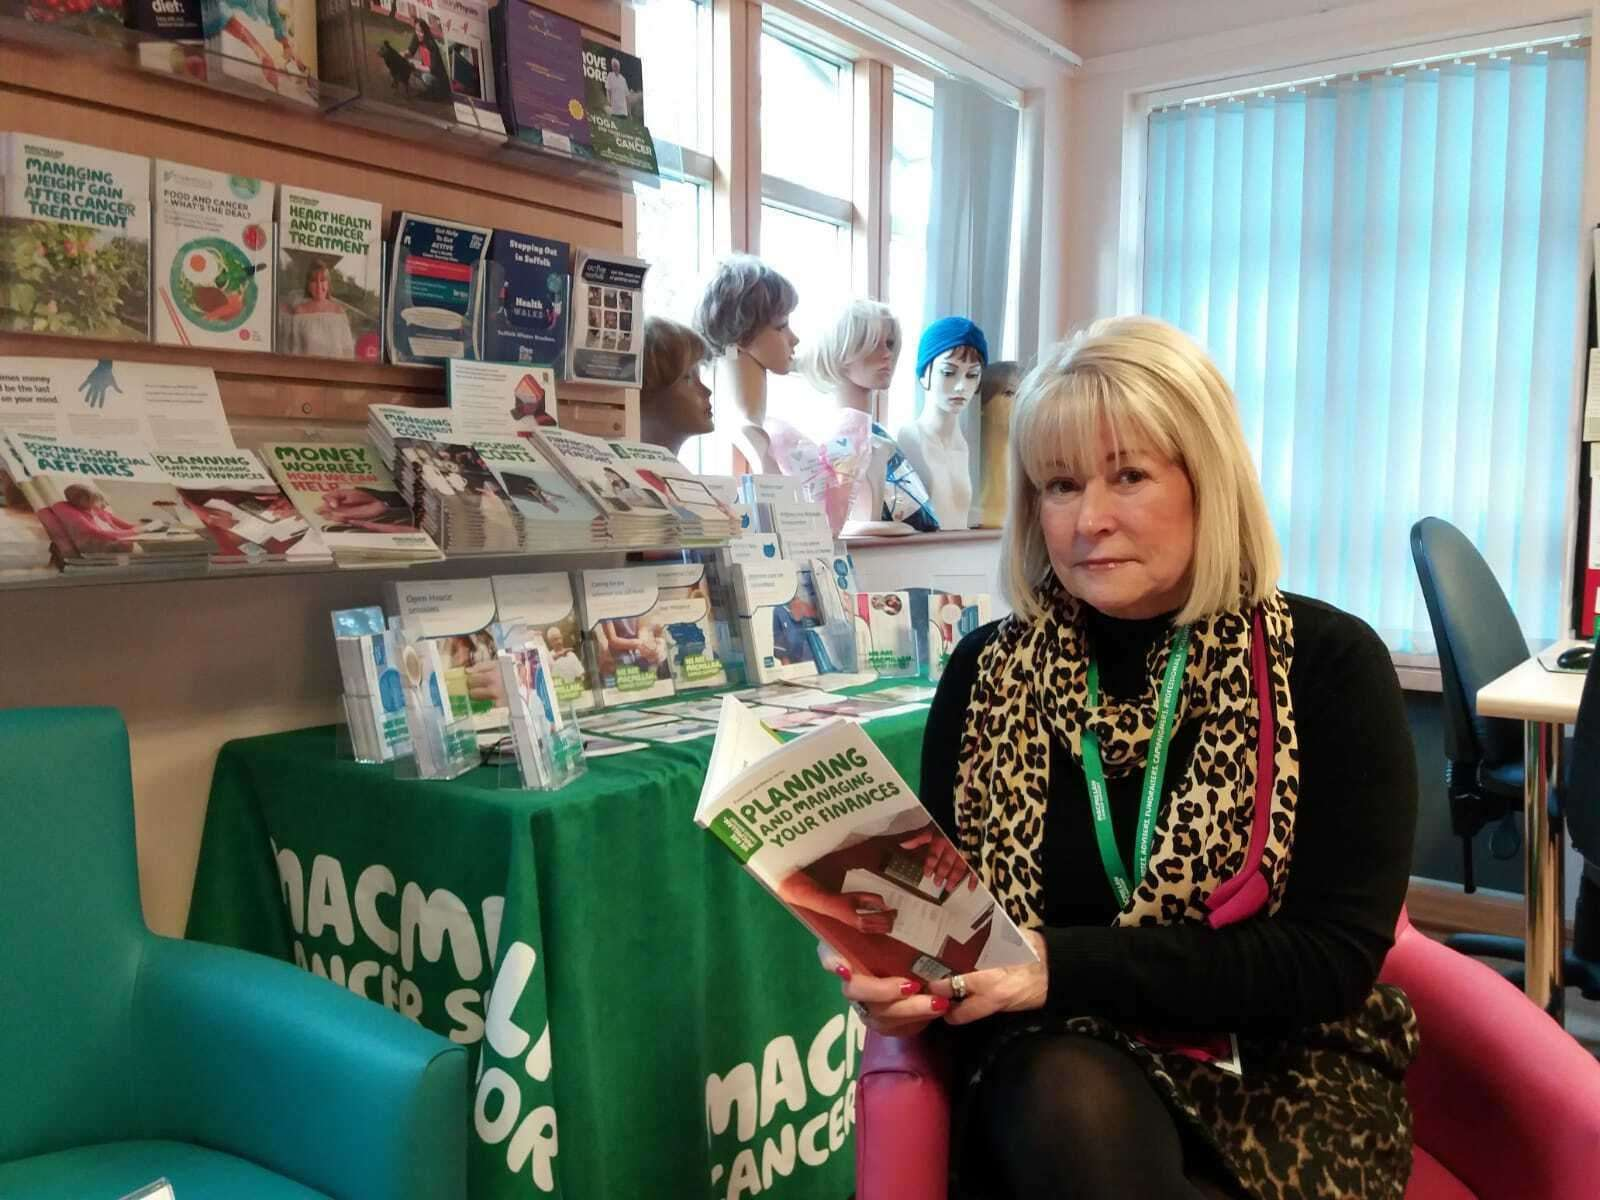 Pat in the West Suffolk Macmillan Centre, where she supports patients as part of a team.